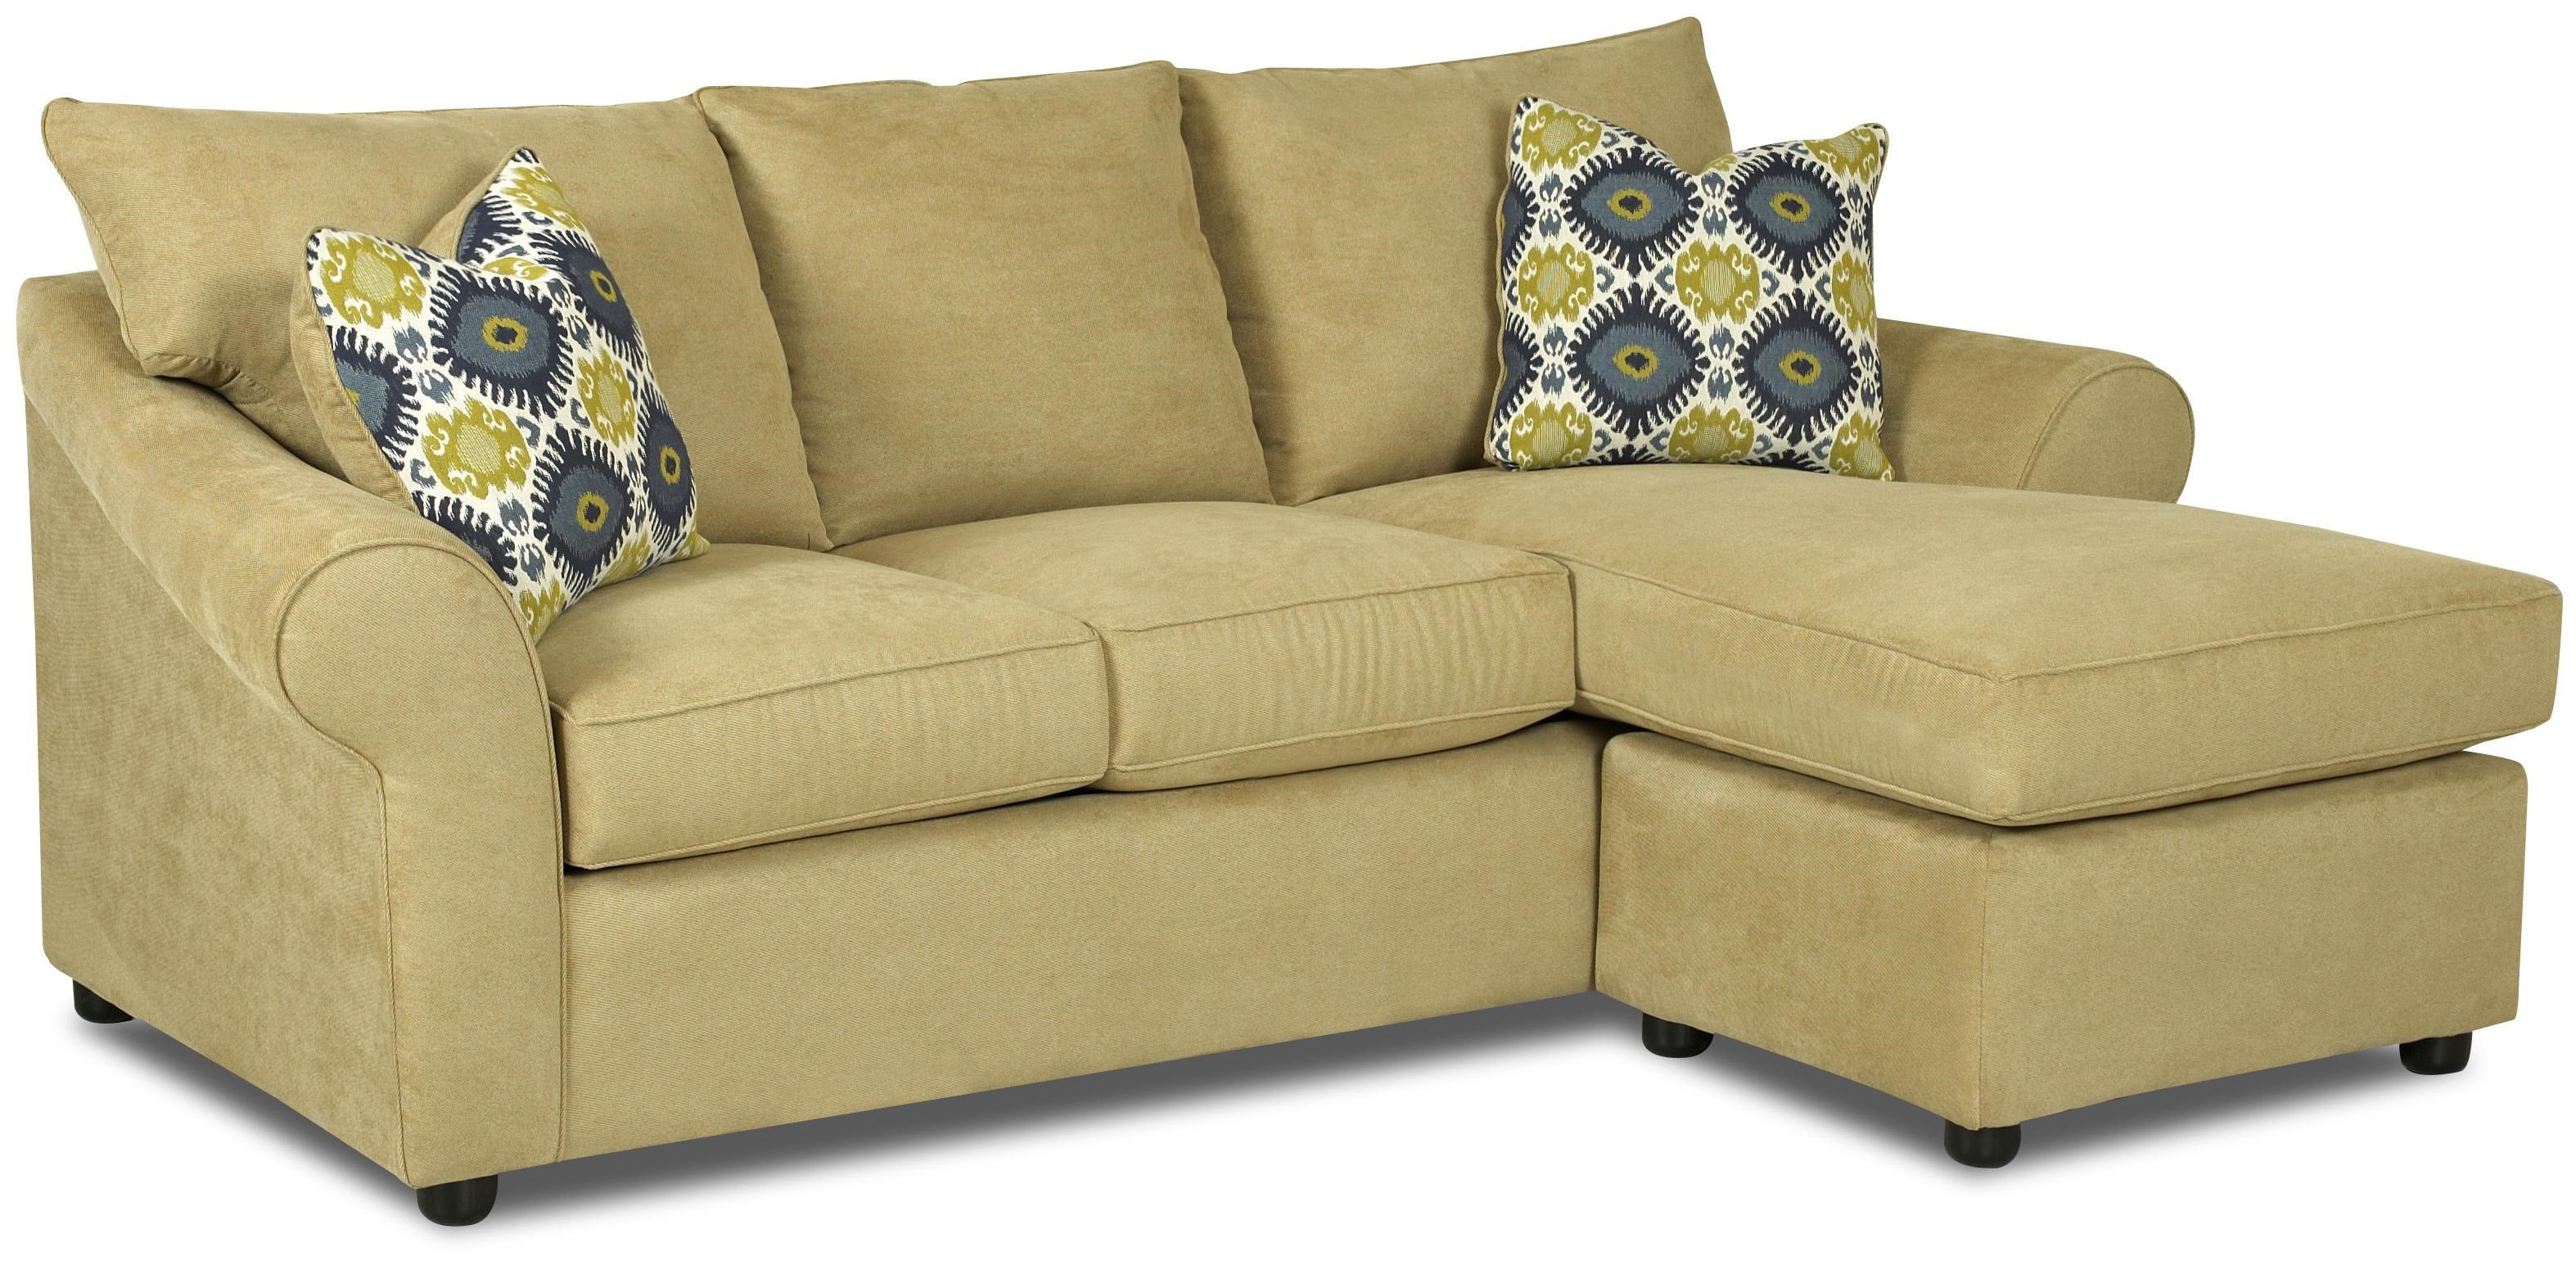 Klaussner Folio Sofa with Reversible Chaise Lounge - Dunk u0026 Bright Furniture - Sofa Sectional  sc 1 st  Dunk u0026 Bright Furniture : klaussner sectional sofa - Sectionals, Sofas & Couches